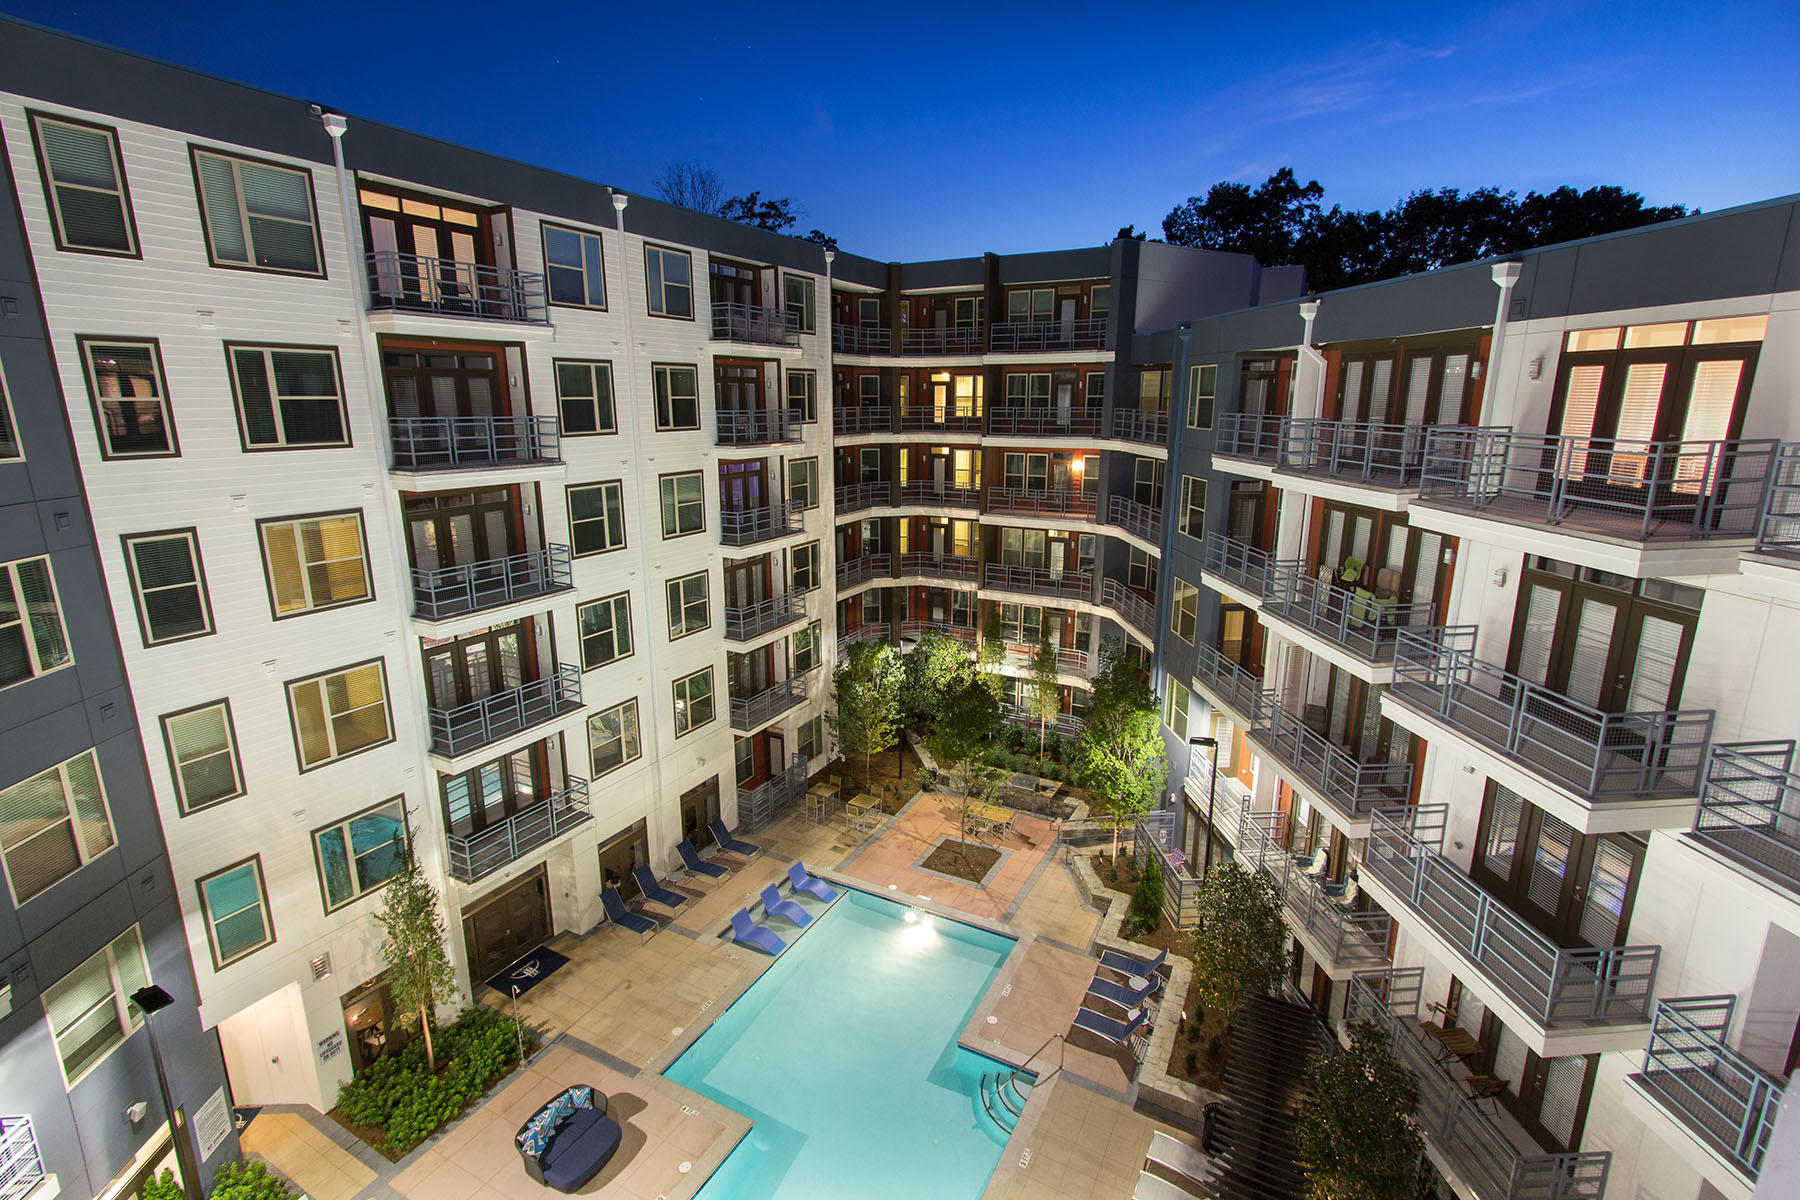 COMMERCIAL MULTIFAMILY TWILIGHT — Atlanta Real Estate